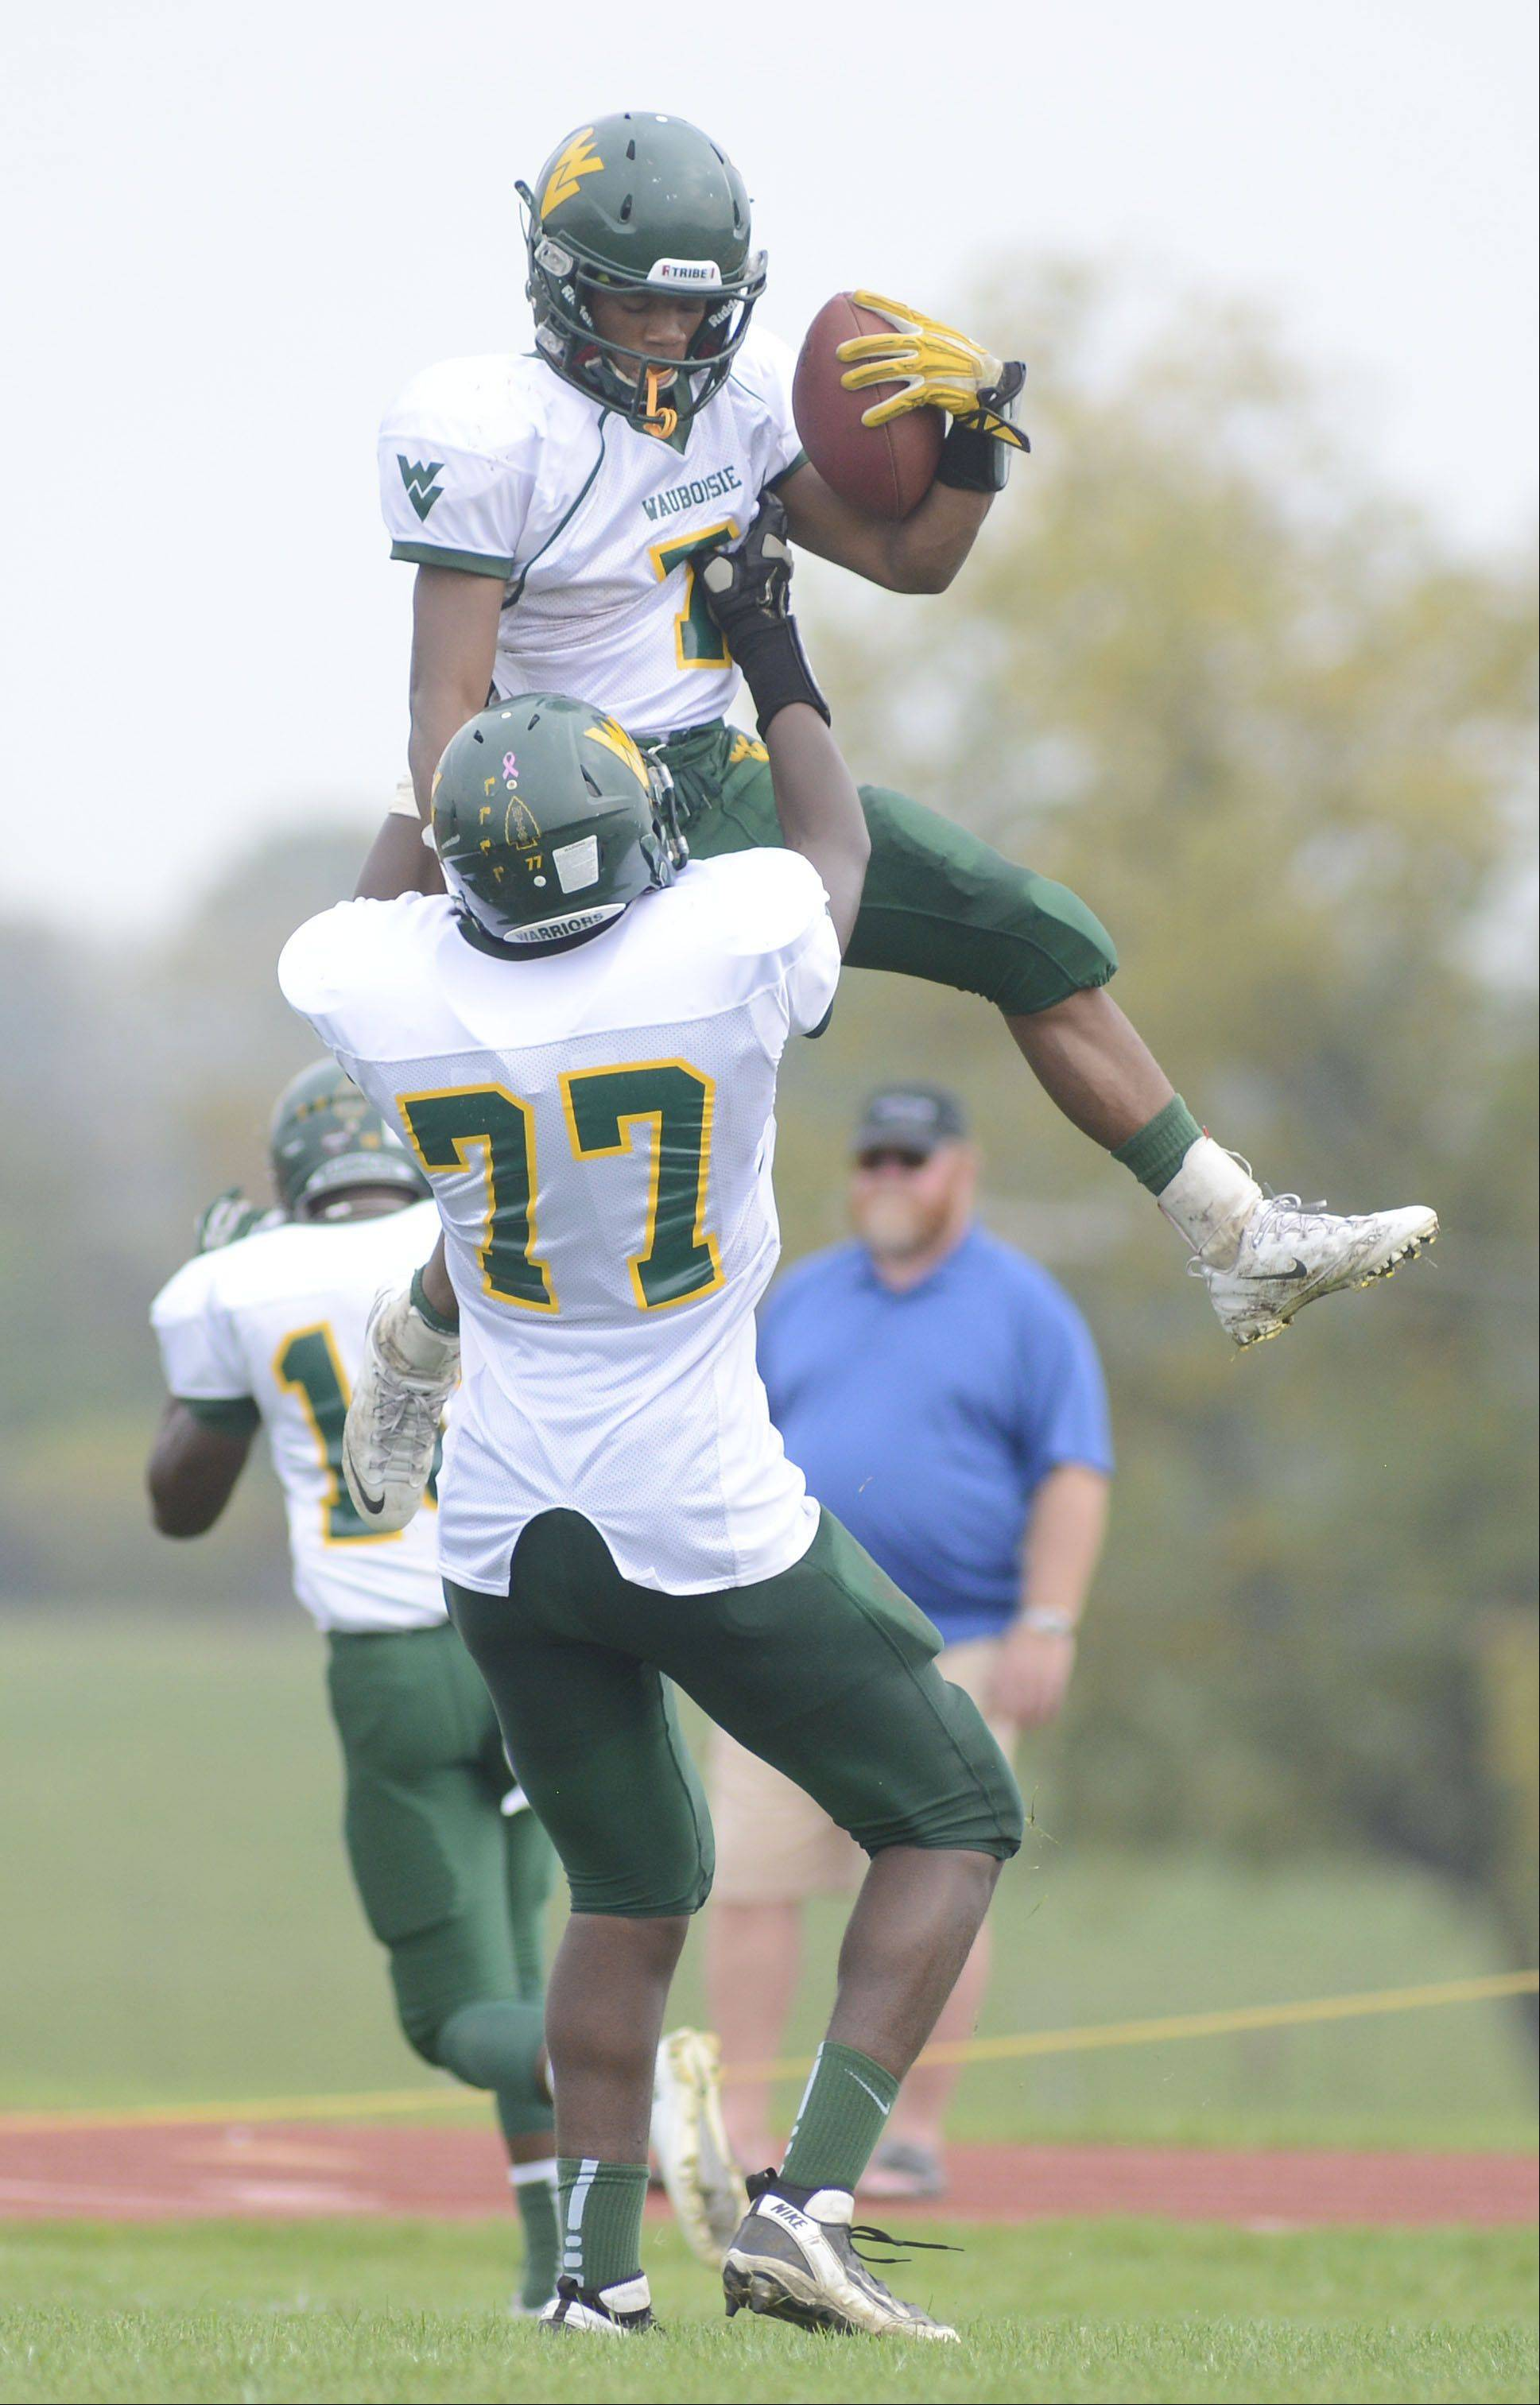 Waubonsie Valley's Tony Durns is hoisted into the air by teammate Jon Harris after scoring a touchdown in the first quarter on Saturday.